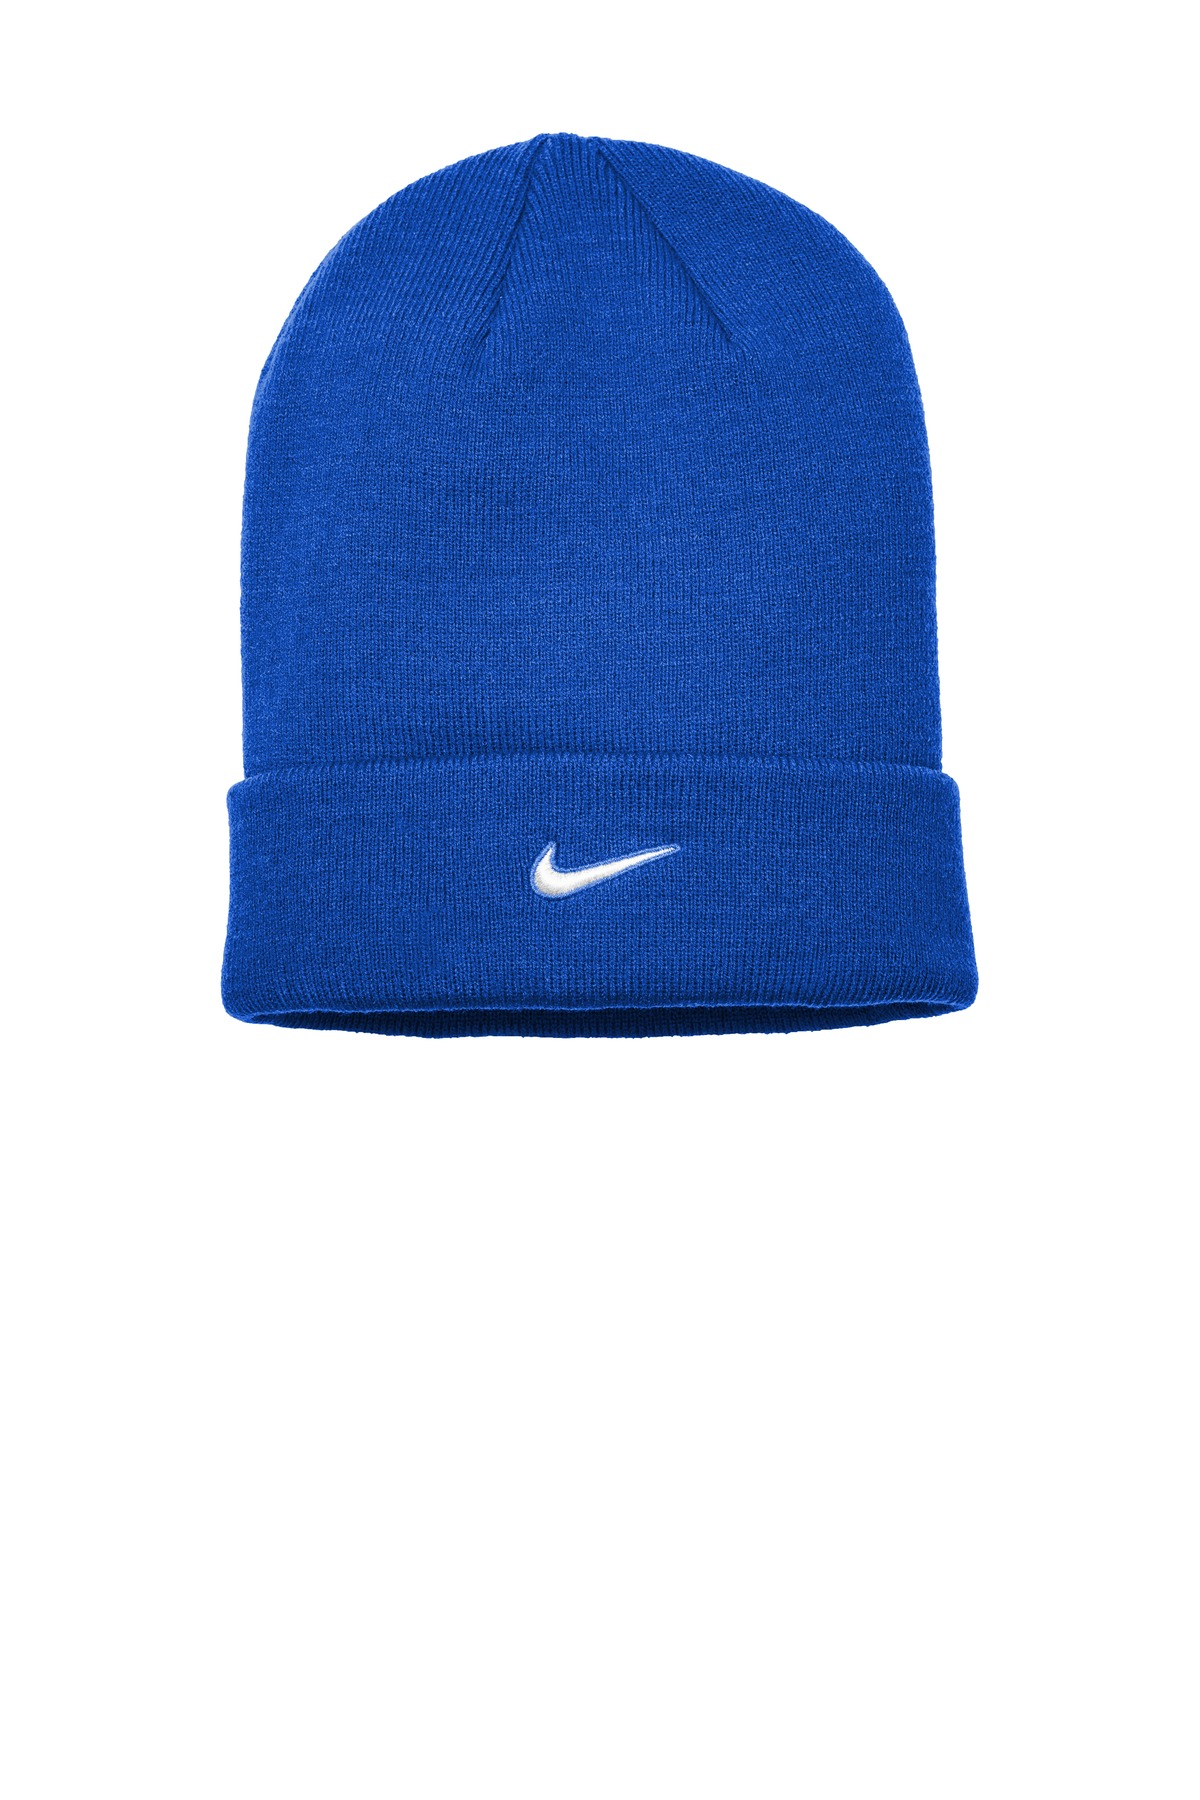 Nike Sideline Beanie 867309 - Game Royal